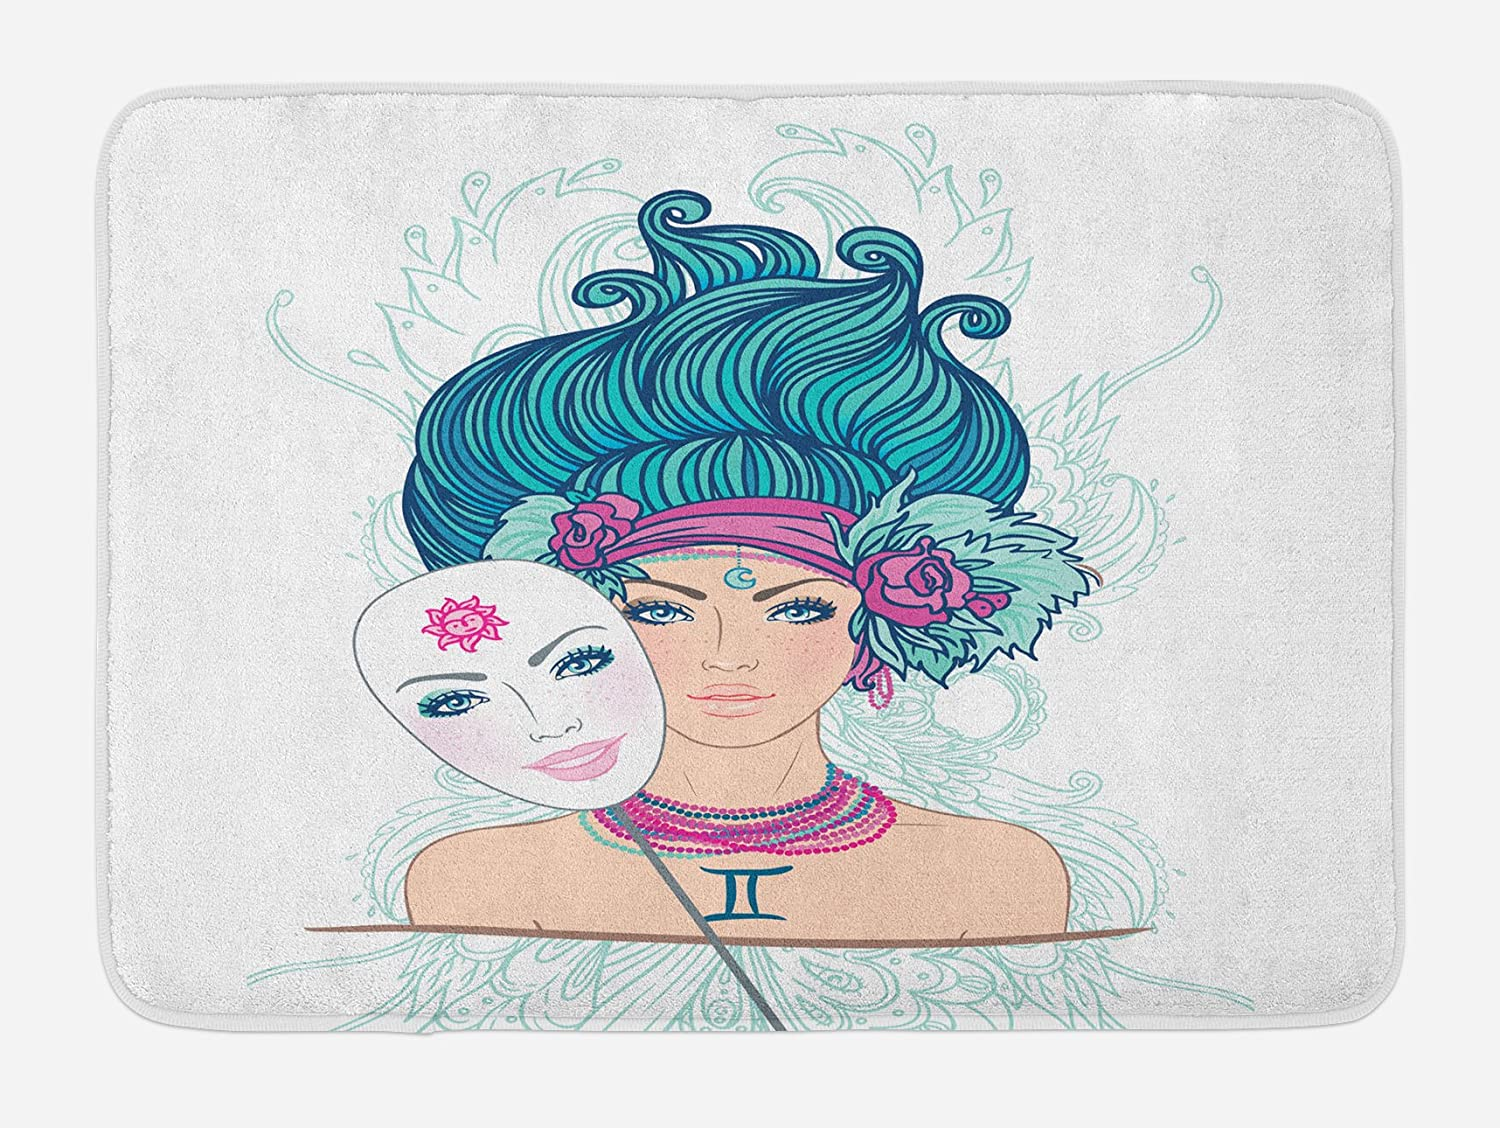 Ambesonne Zodiac Gemini Bath Mat, Young Woman with Sad Expression Holding a Expressing Cheerfulness, Plush Bathroom Decor Mat with Non Slip Backing, 29.5